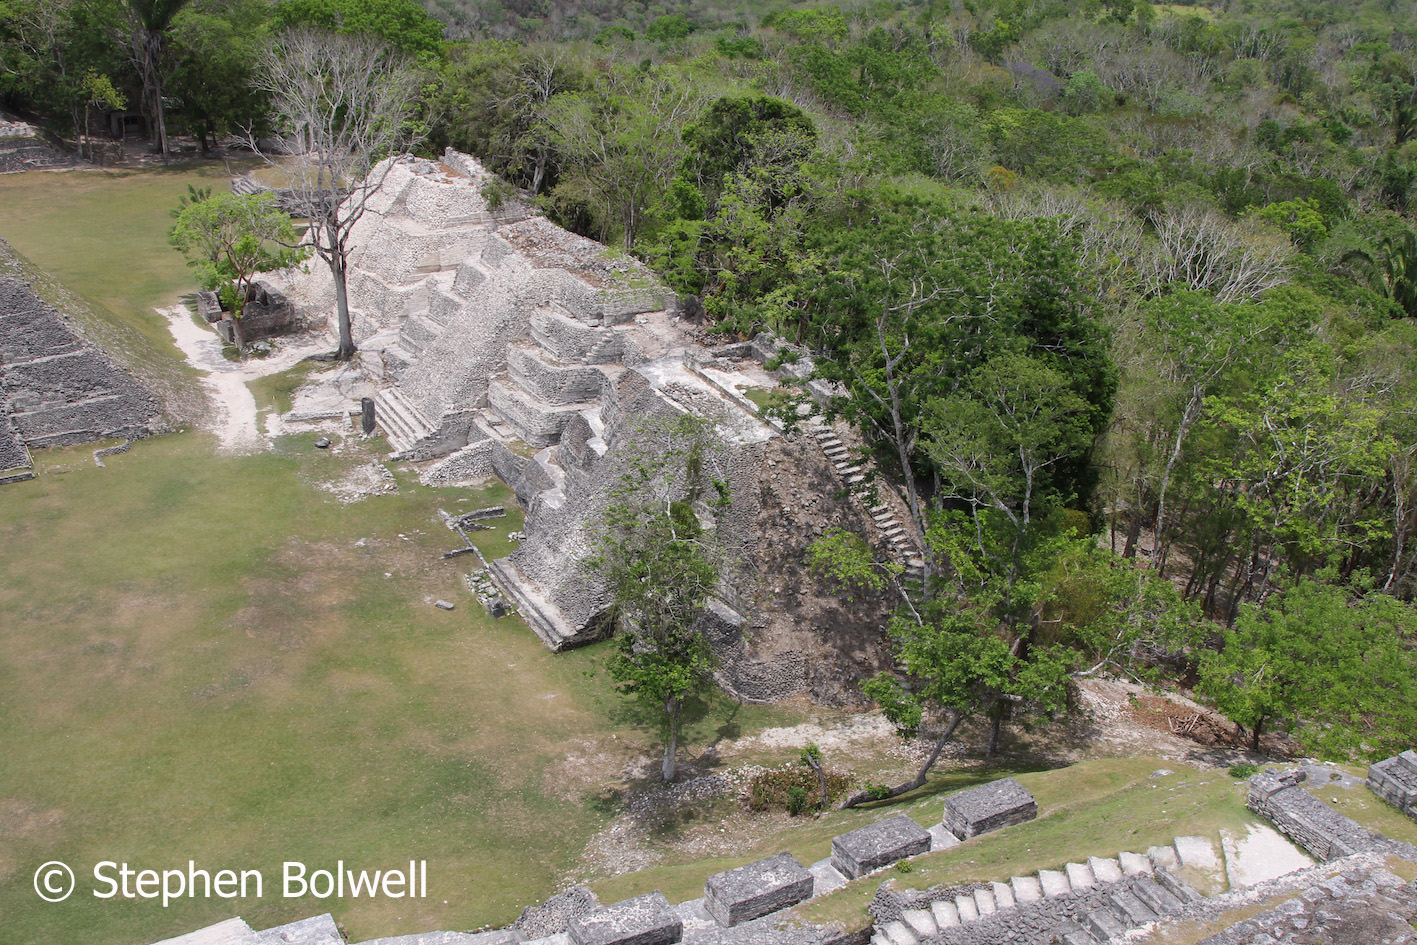 A view looking down from the top of El Castillo.